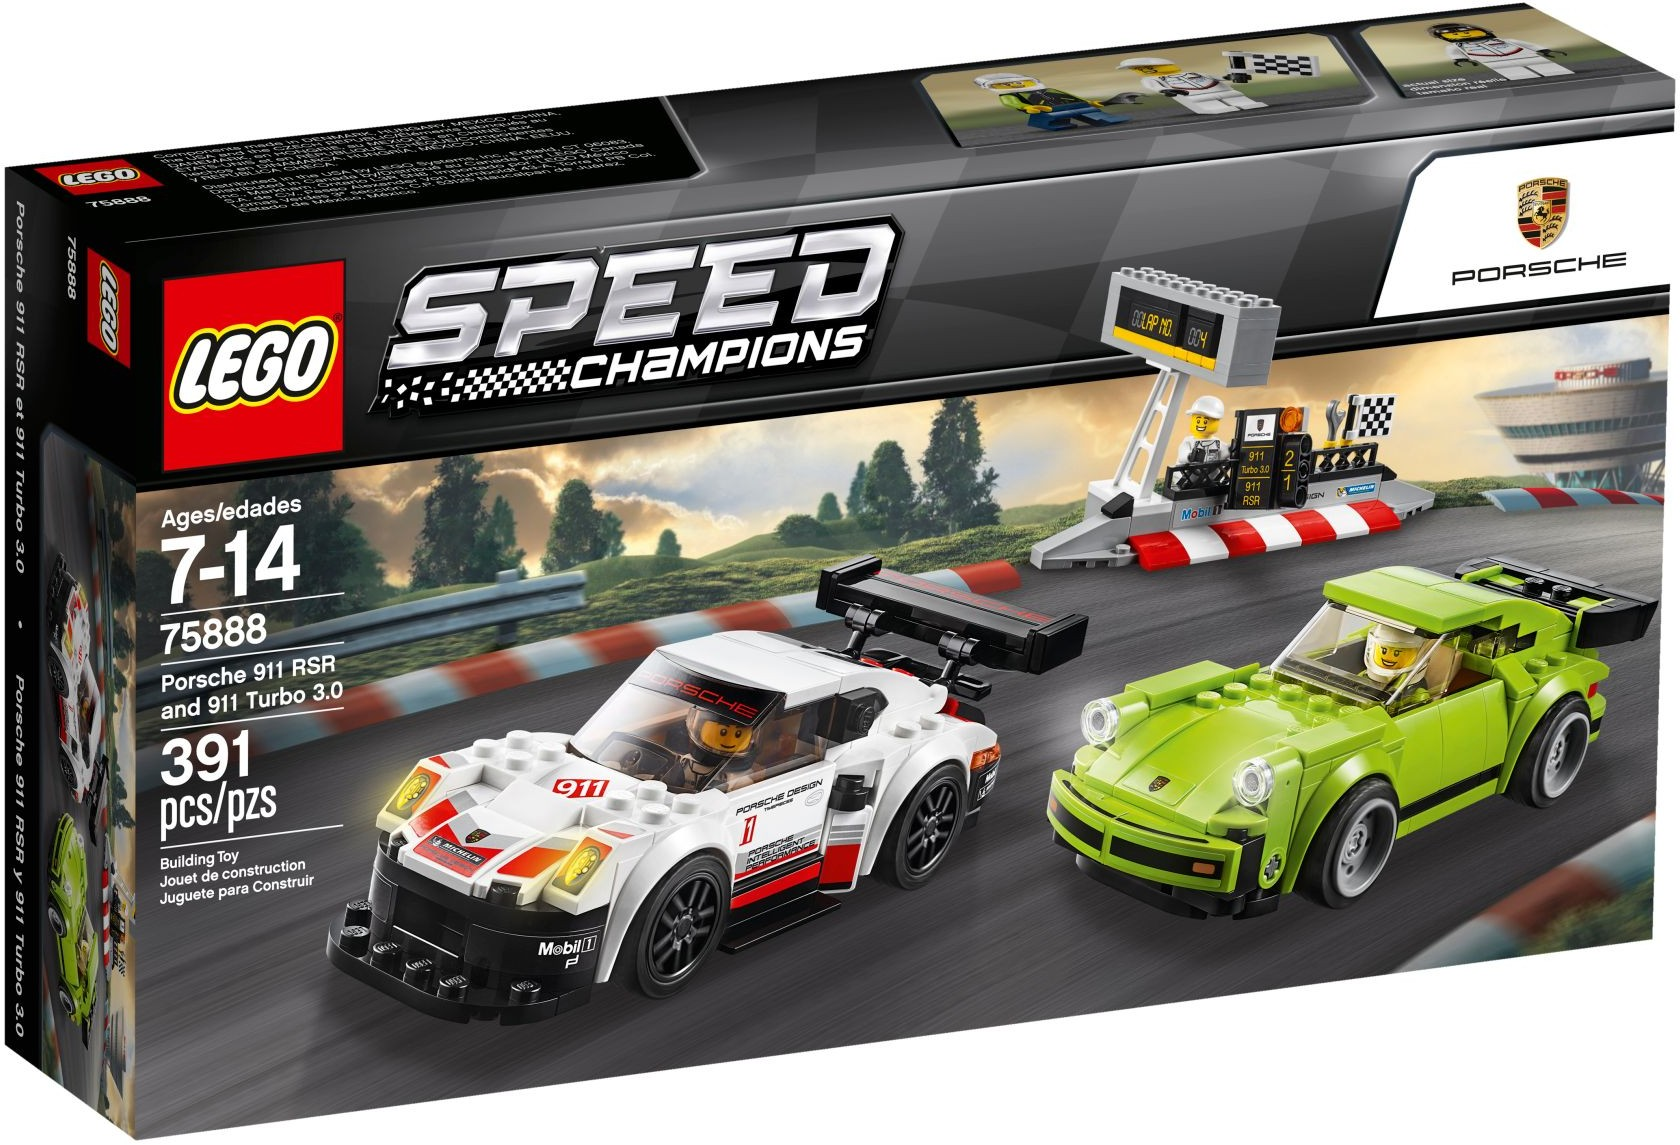 75888 LEGO Porsche 911 RSR and 911 Turbo 3.0 - Siêu xe